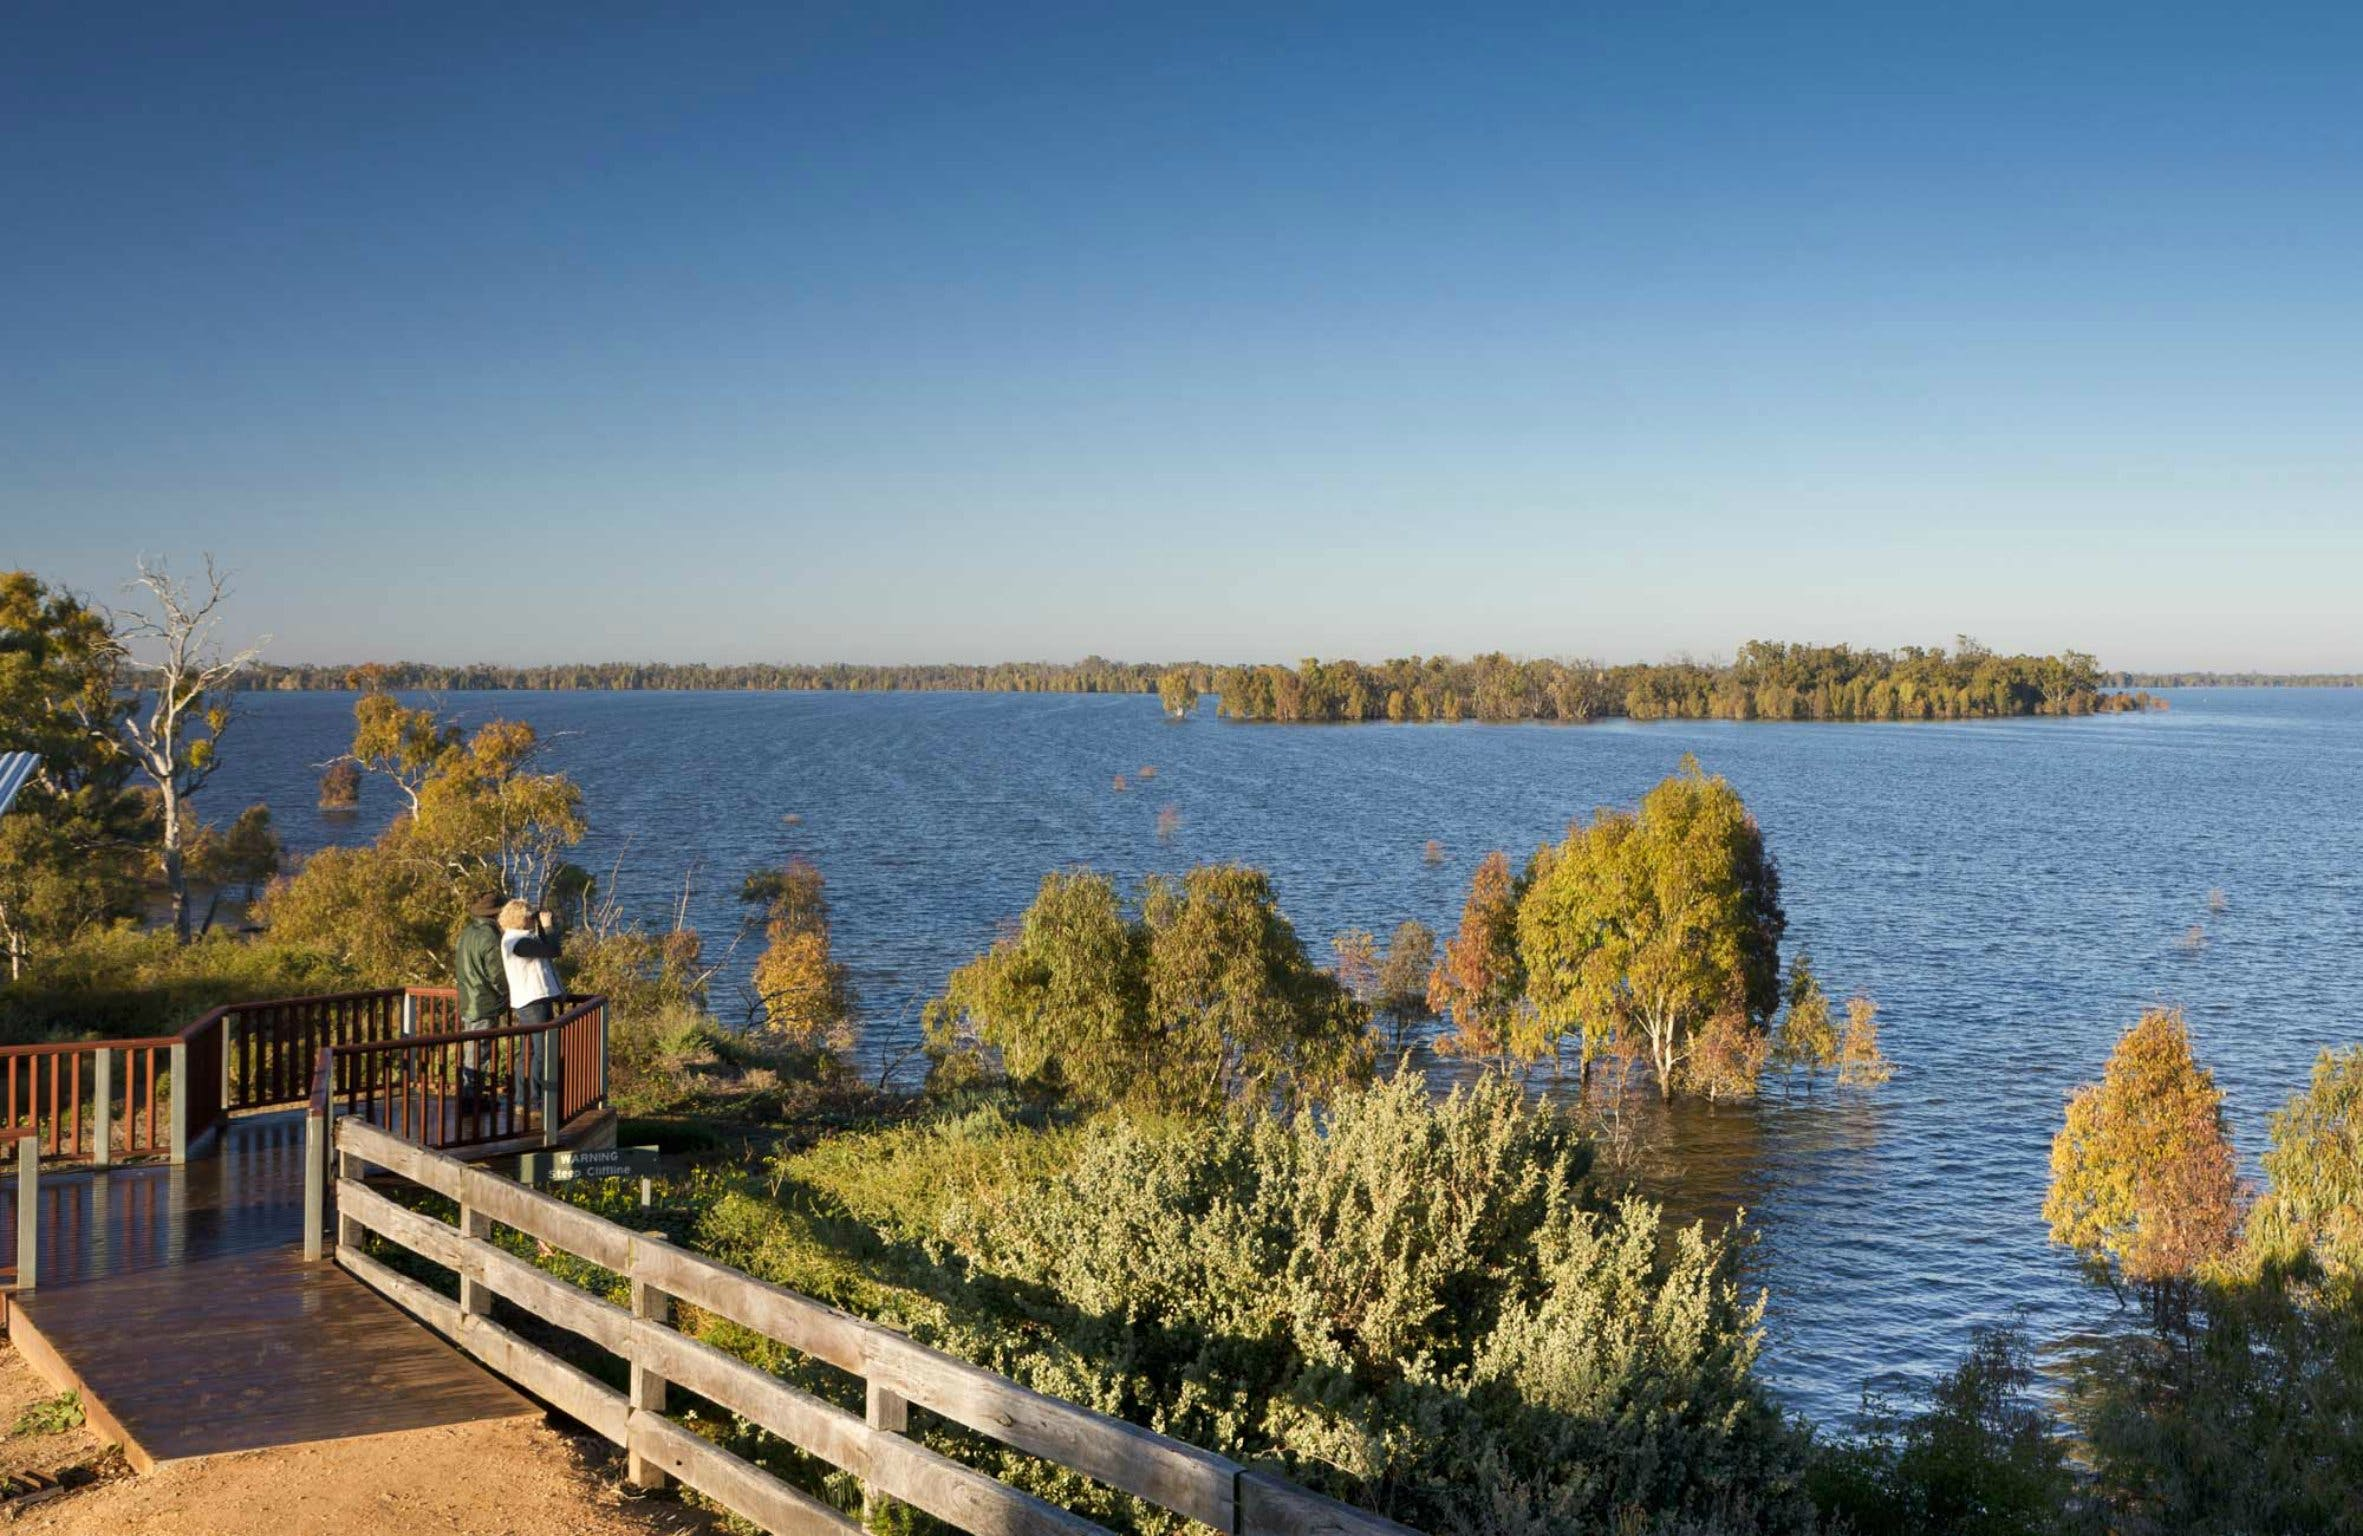 Yanga Lake Viewing Deck - Find Attractions